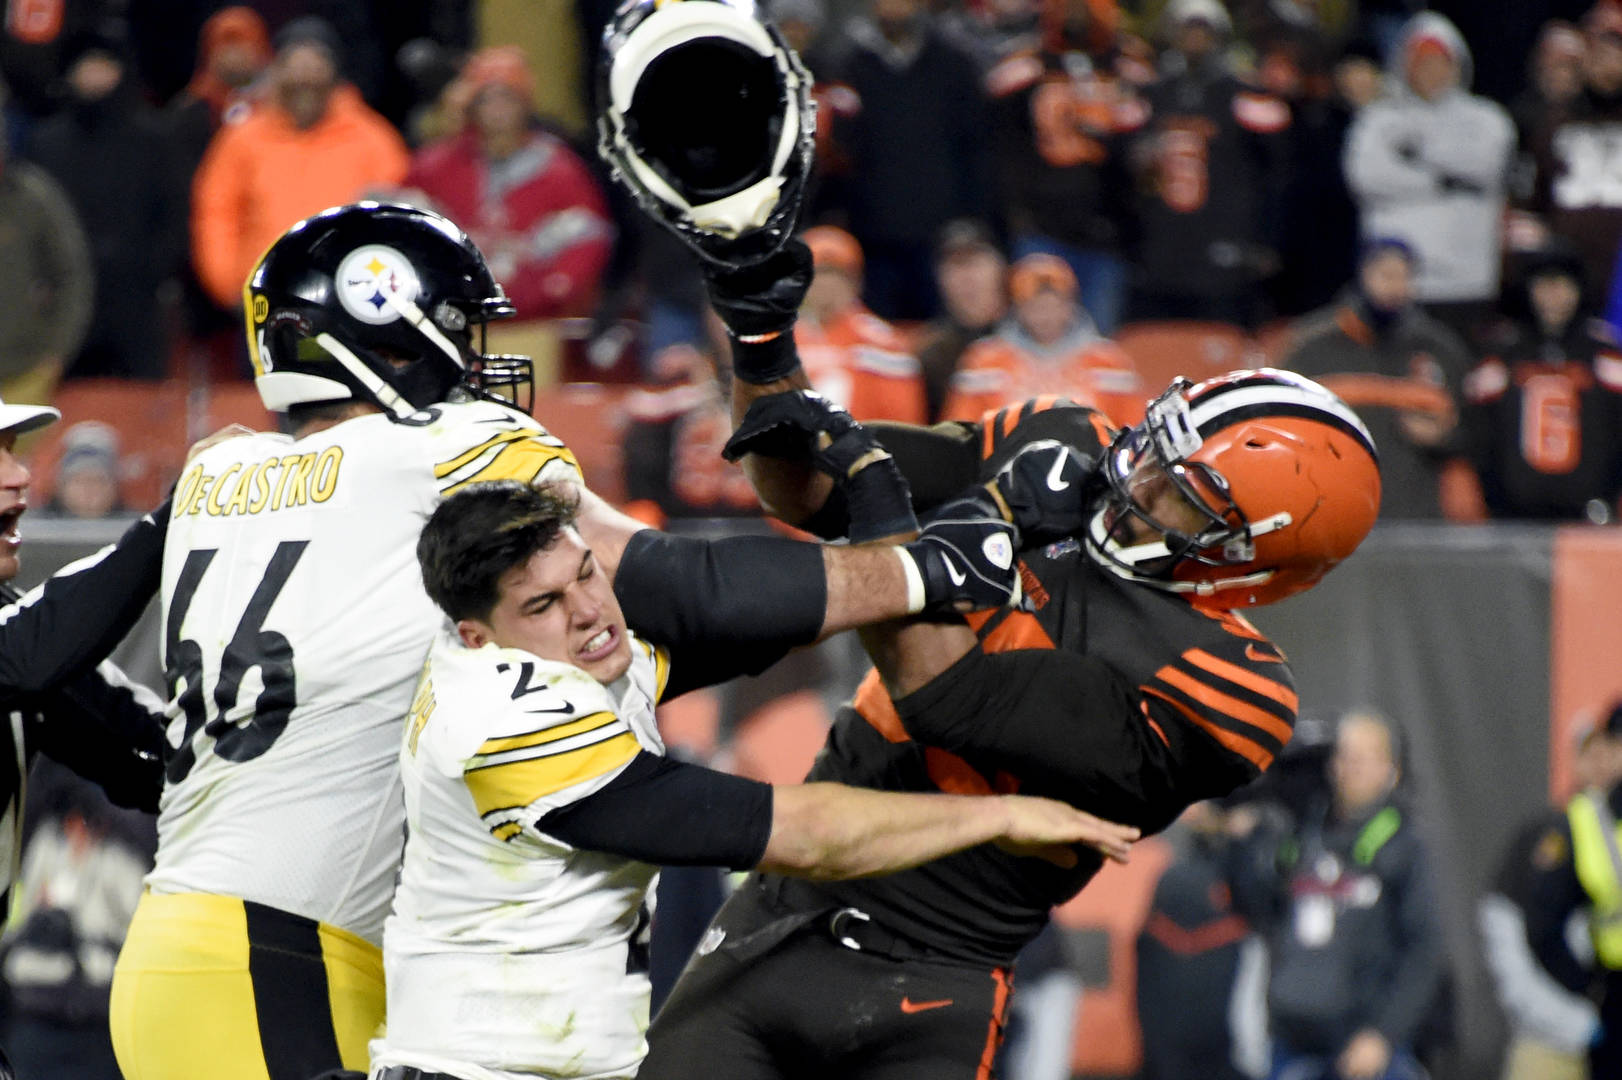 Mason Rudolph Myles Garrett helmet-swinging incident legal action liability racial slur Pittsburgh Steelers Cleveland Browns Browns Steelers Pittsburgh Cleveland